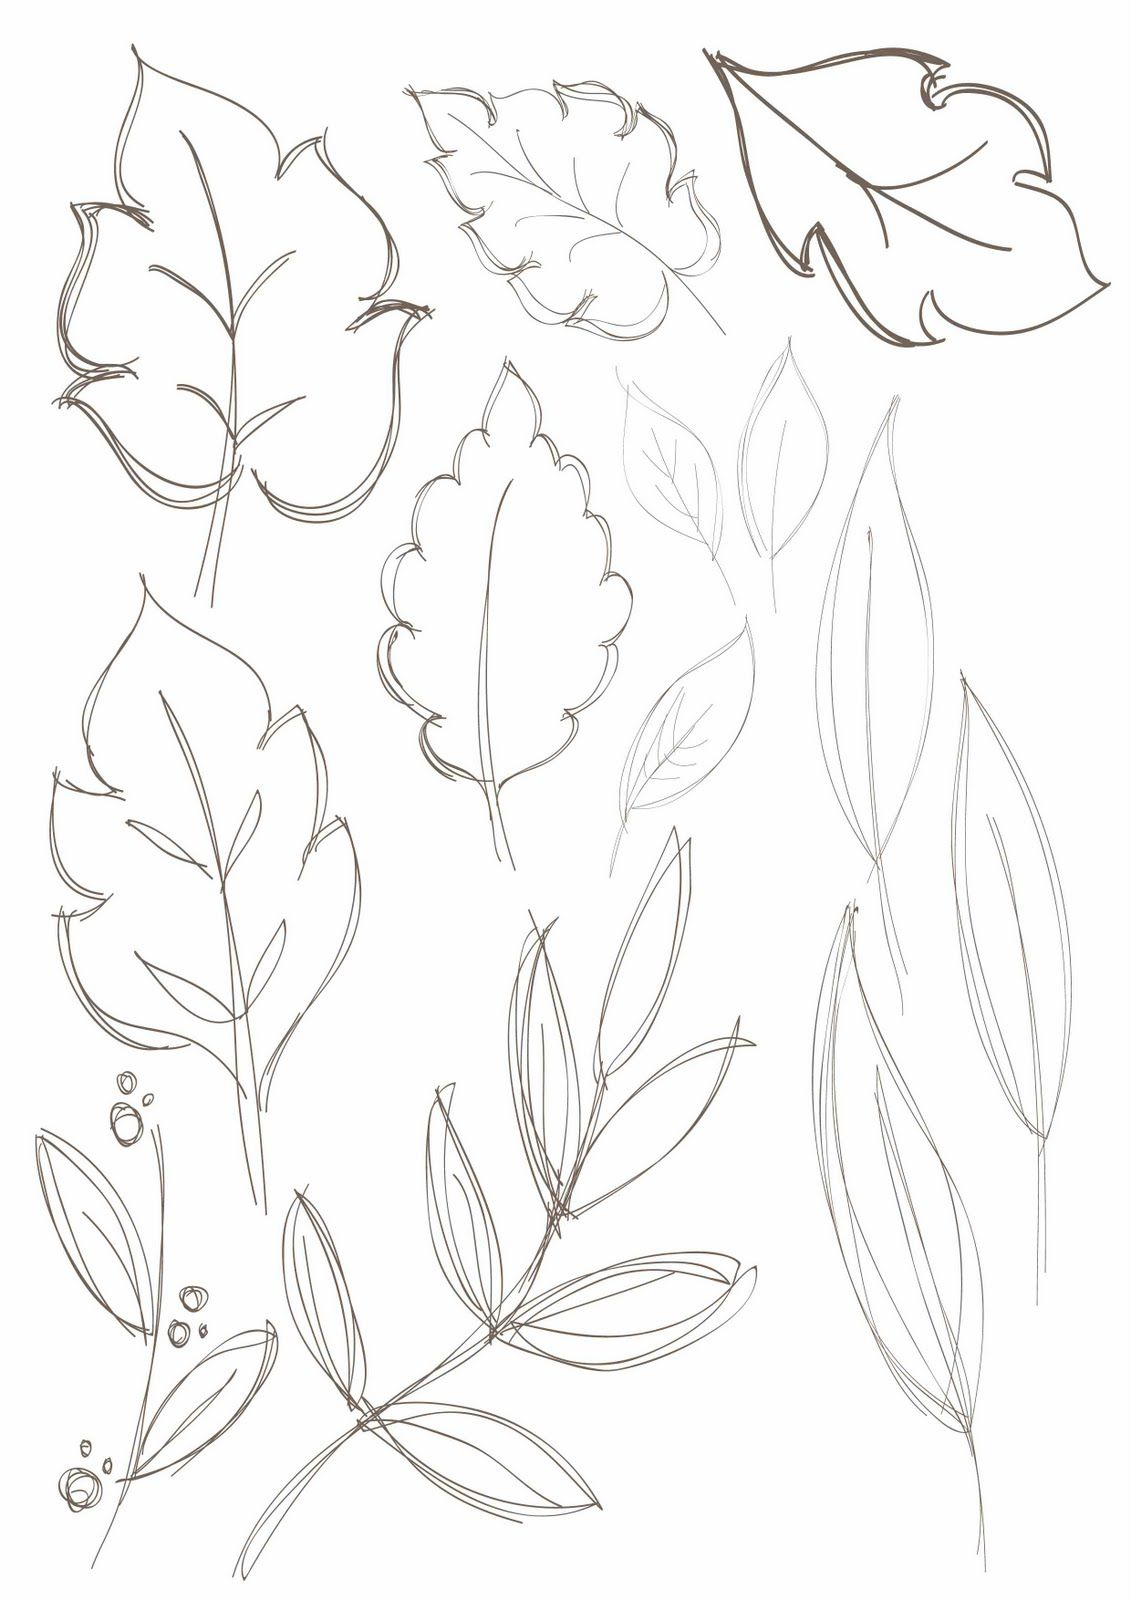 Leafy floral drawing leaf drawing nature drawing doodle drawings pencil drawings